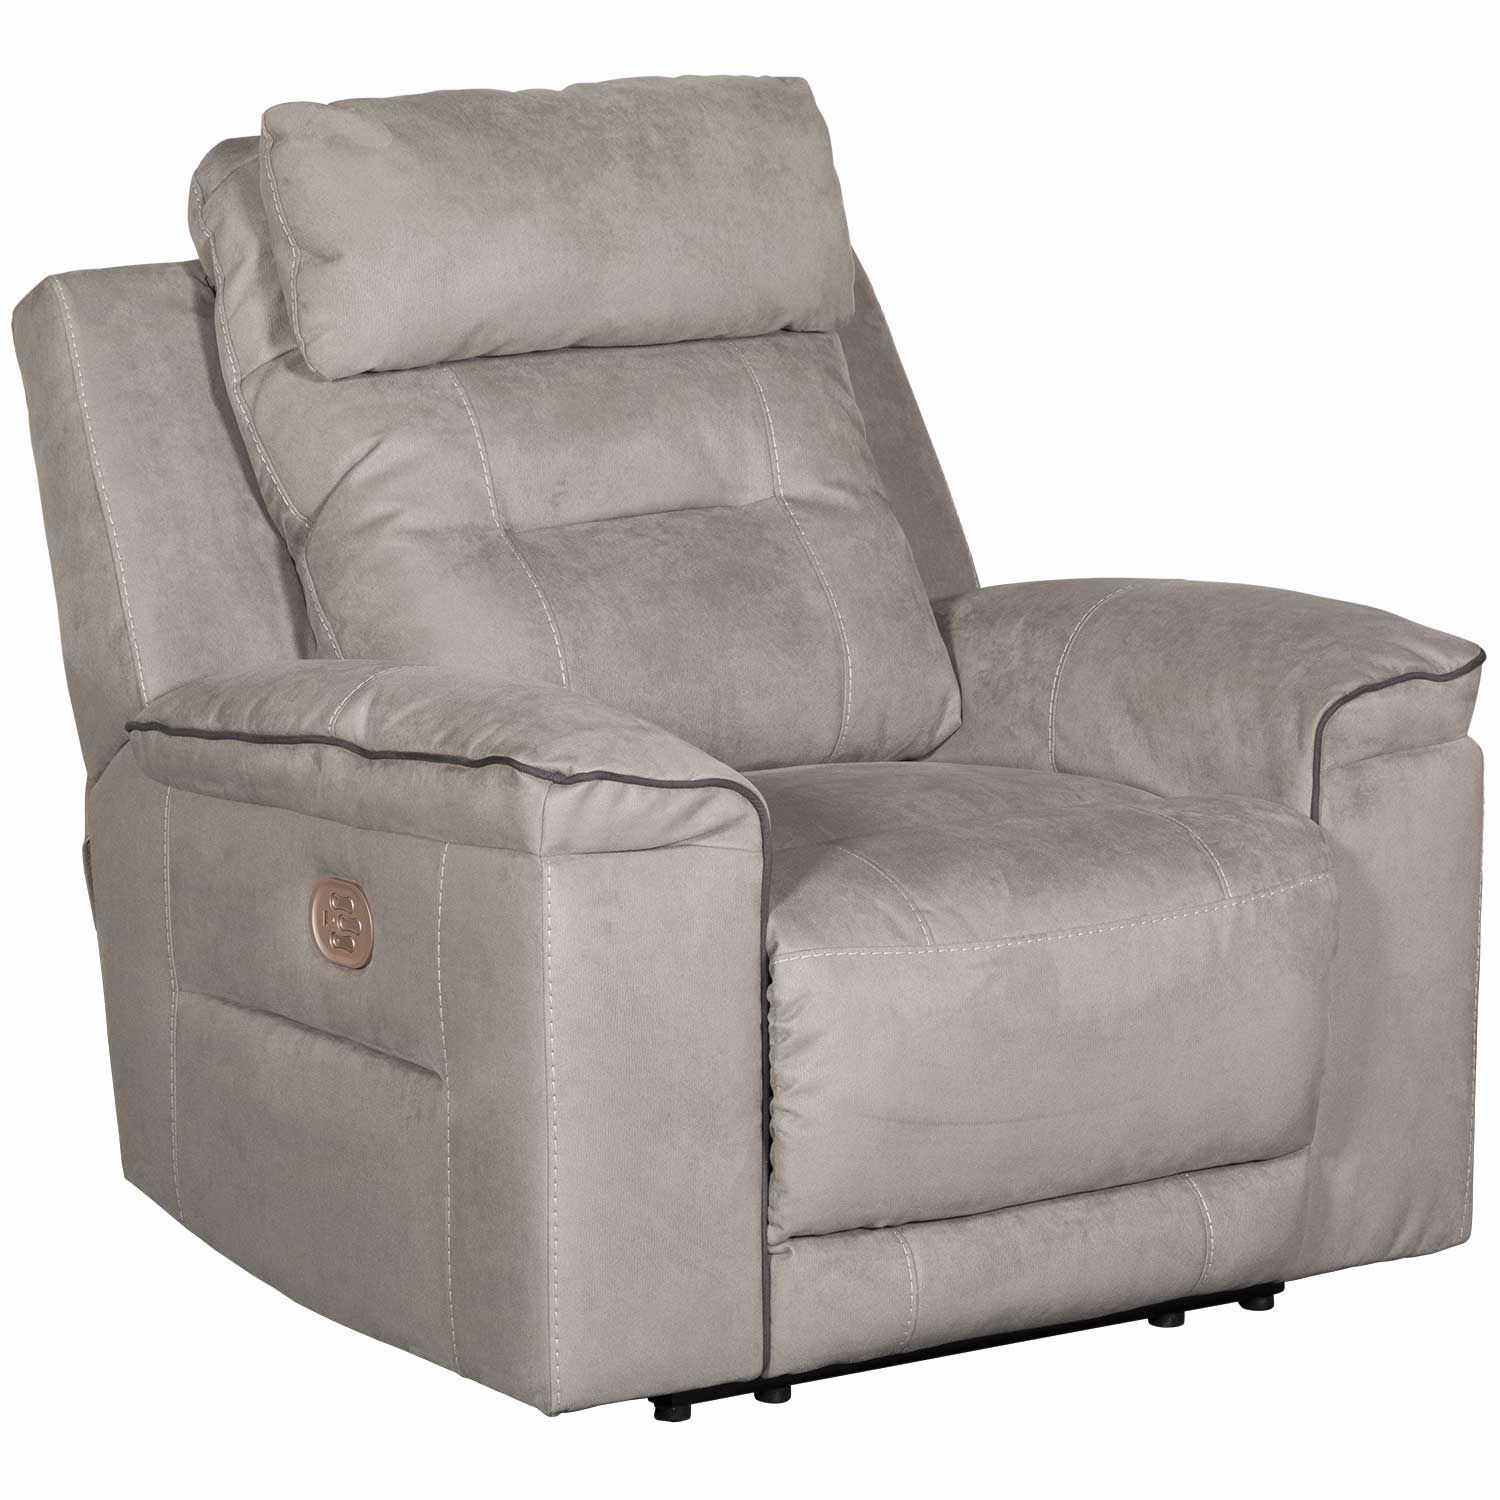 Astounding Trampton Power Recliner With Headrest And Lumbar Ibusinesslaw Wood Chair Design Ideas Ibusinesslaworg